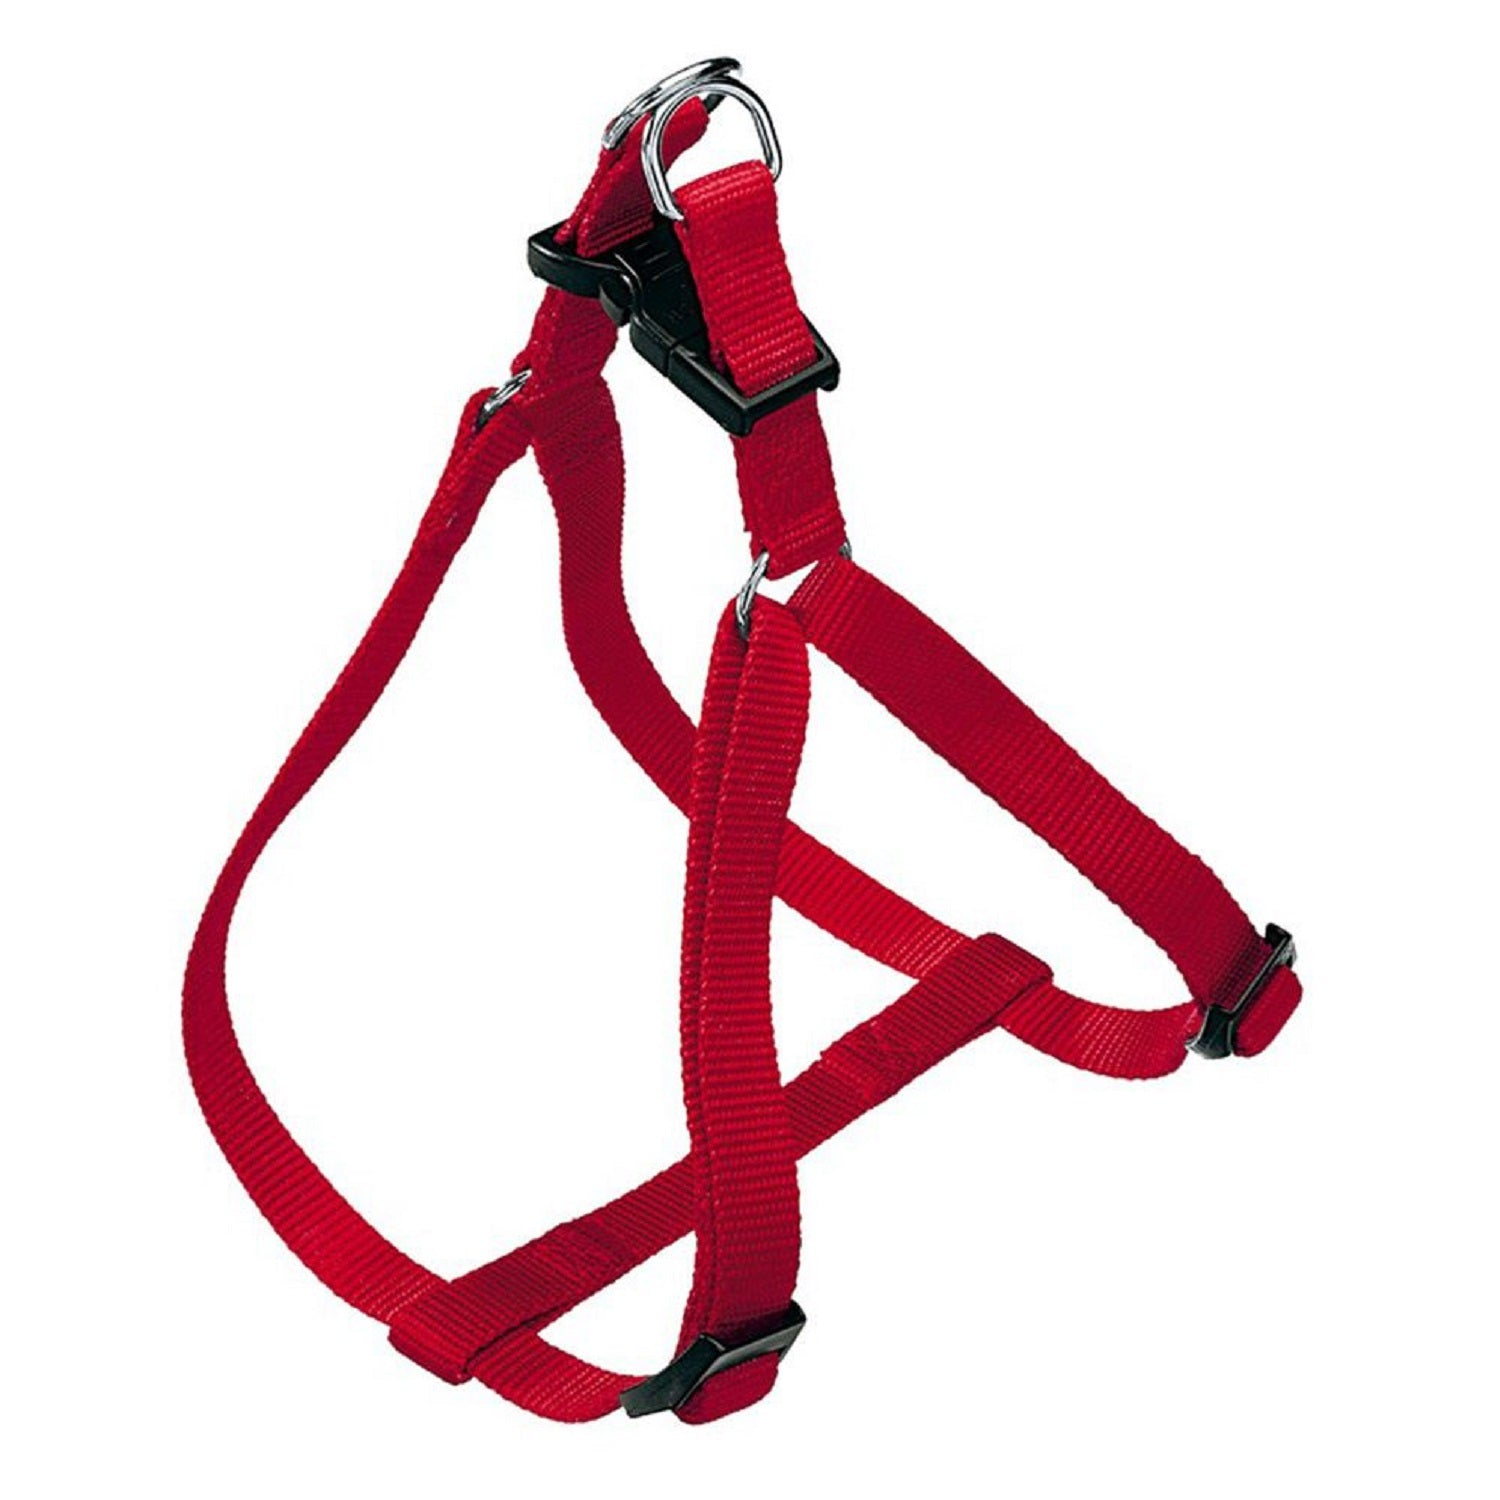 Super Dog Red Colored Nylon Adjustable Dog Harness - pet-club-india